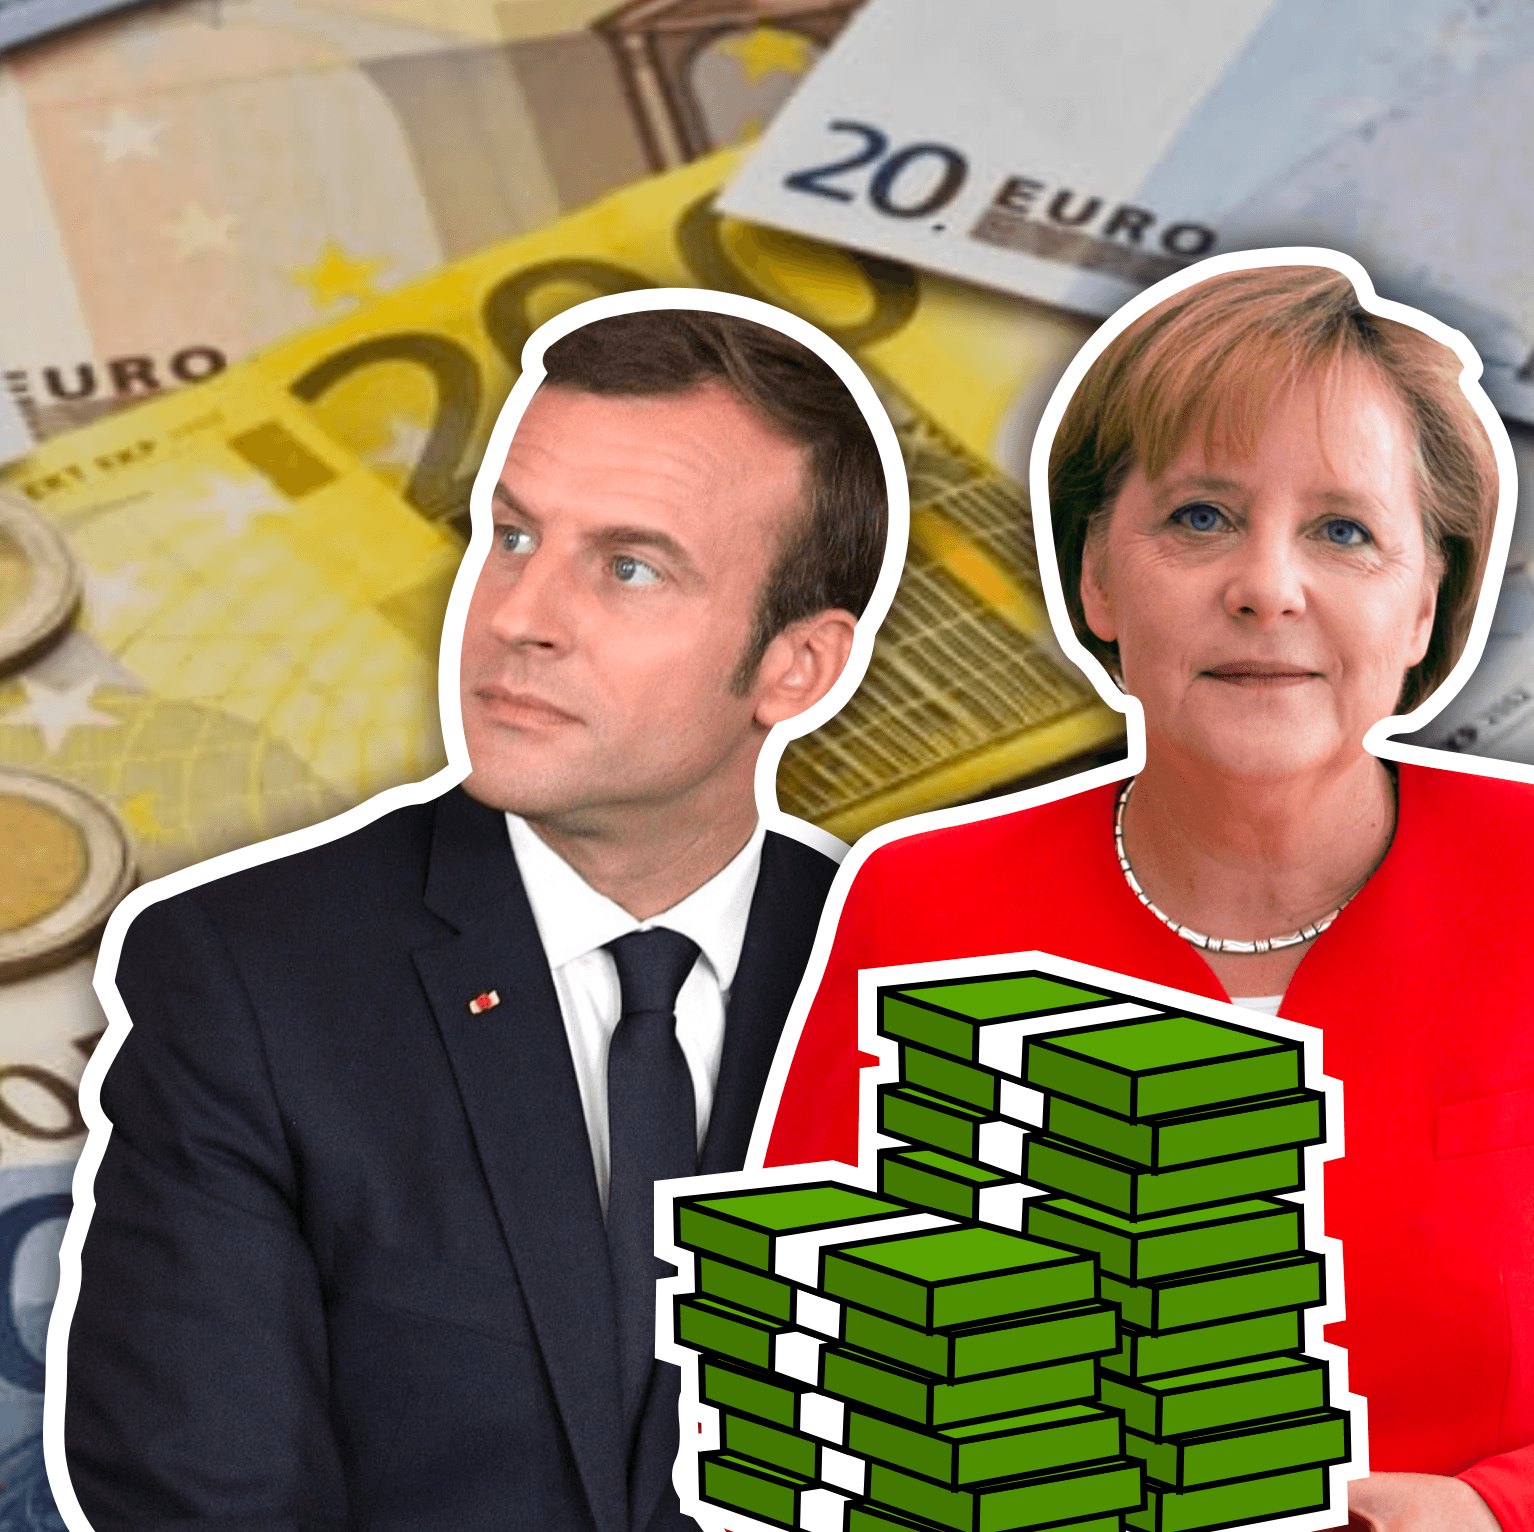 The EU's €500 Billion COVID Stimulus: France & Germany's Plan to Save the EU 1